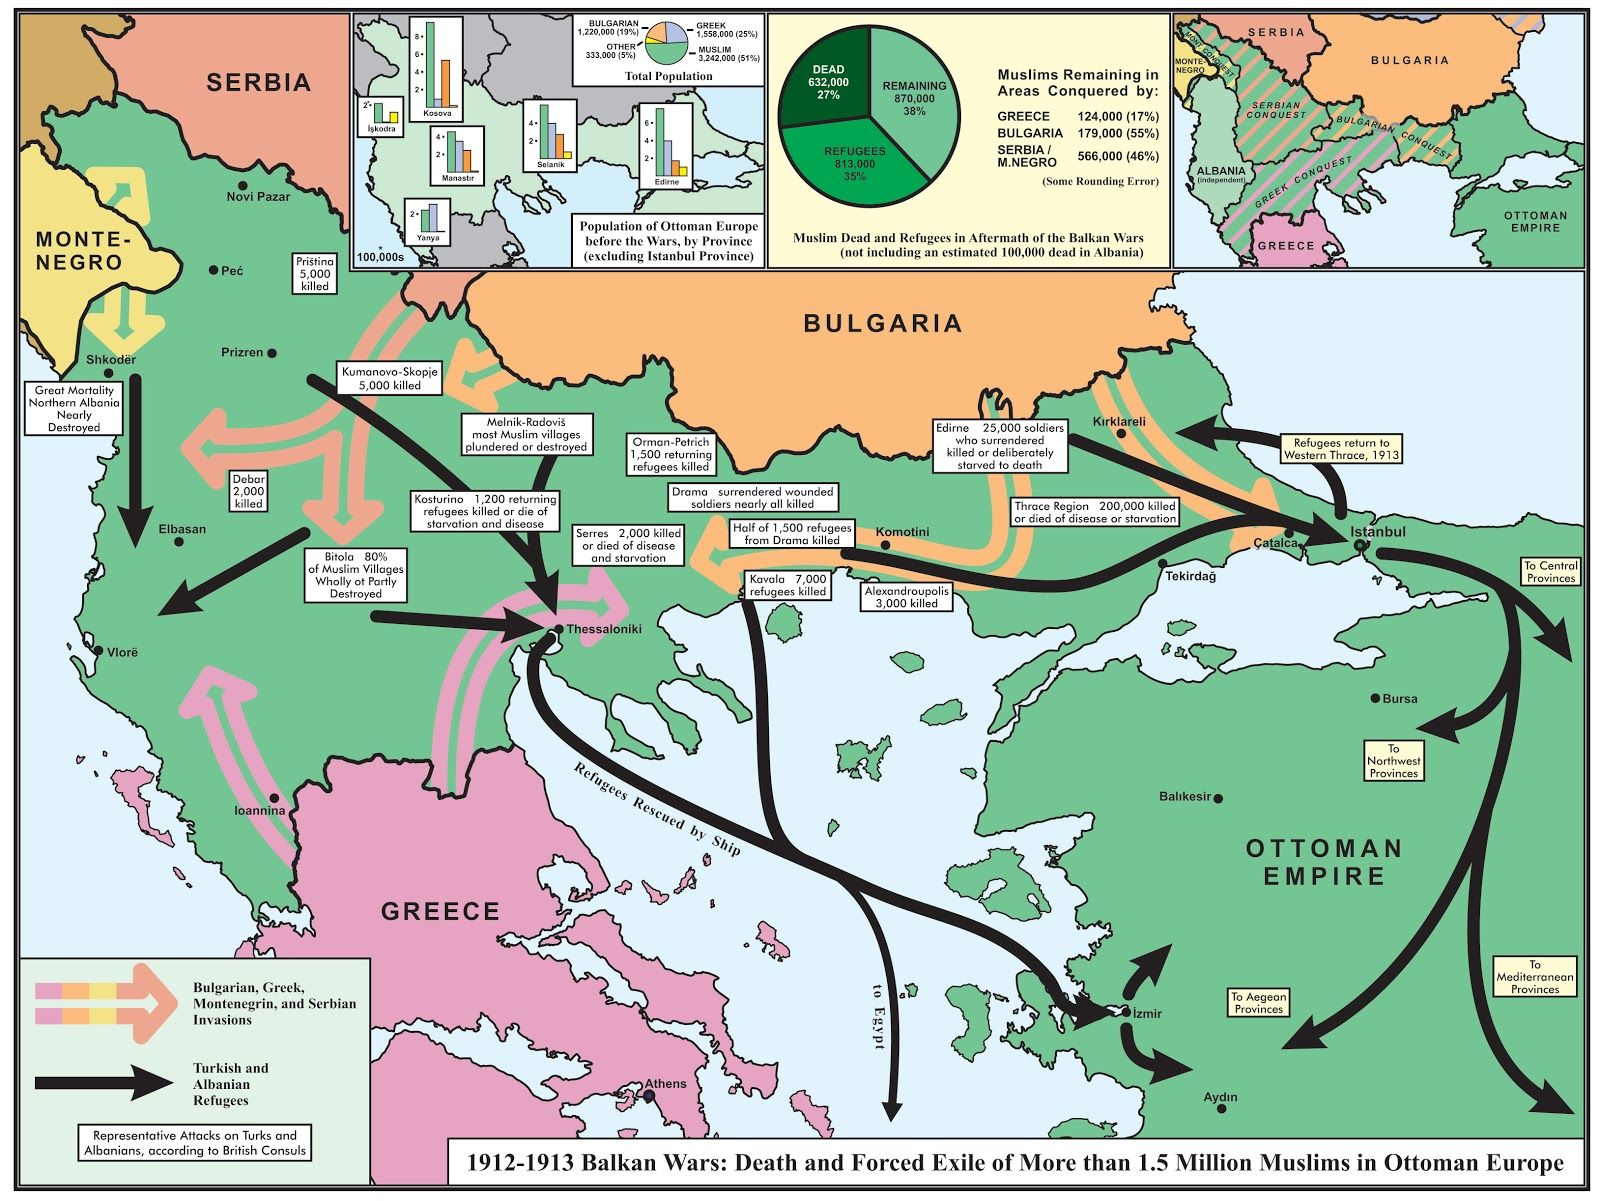 The first Balkan War, which broke out on October 8, 1912